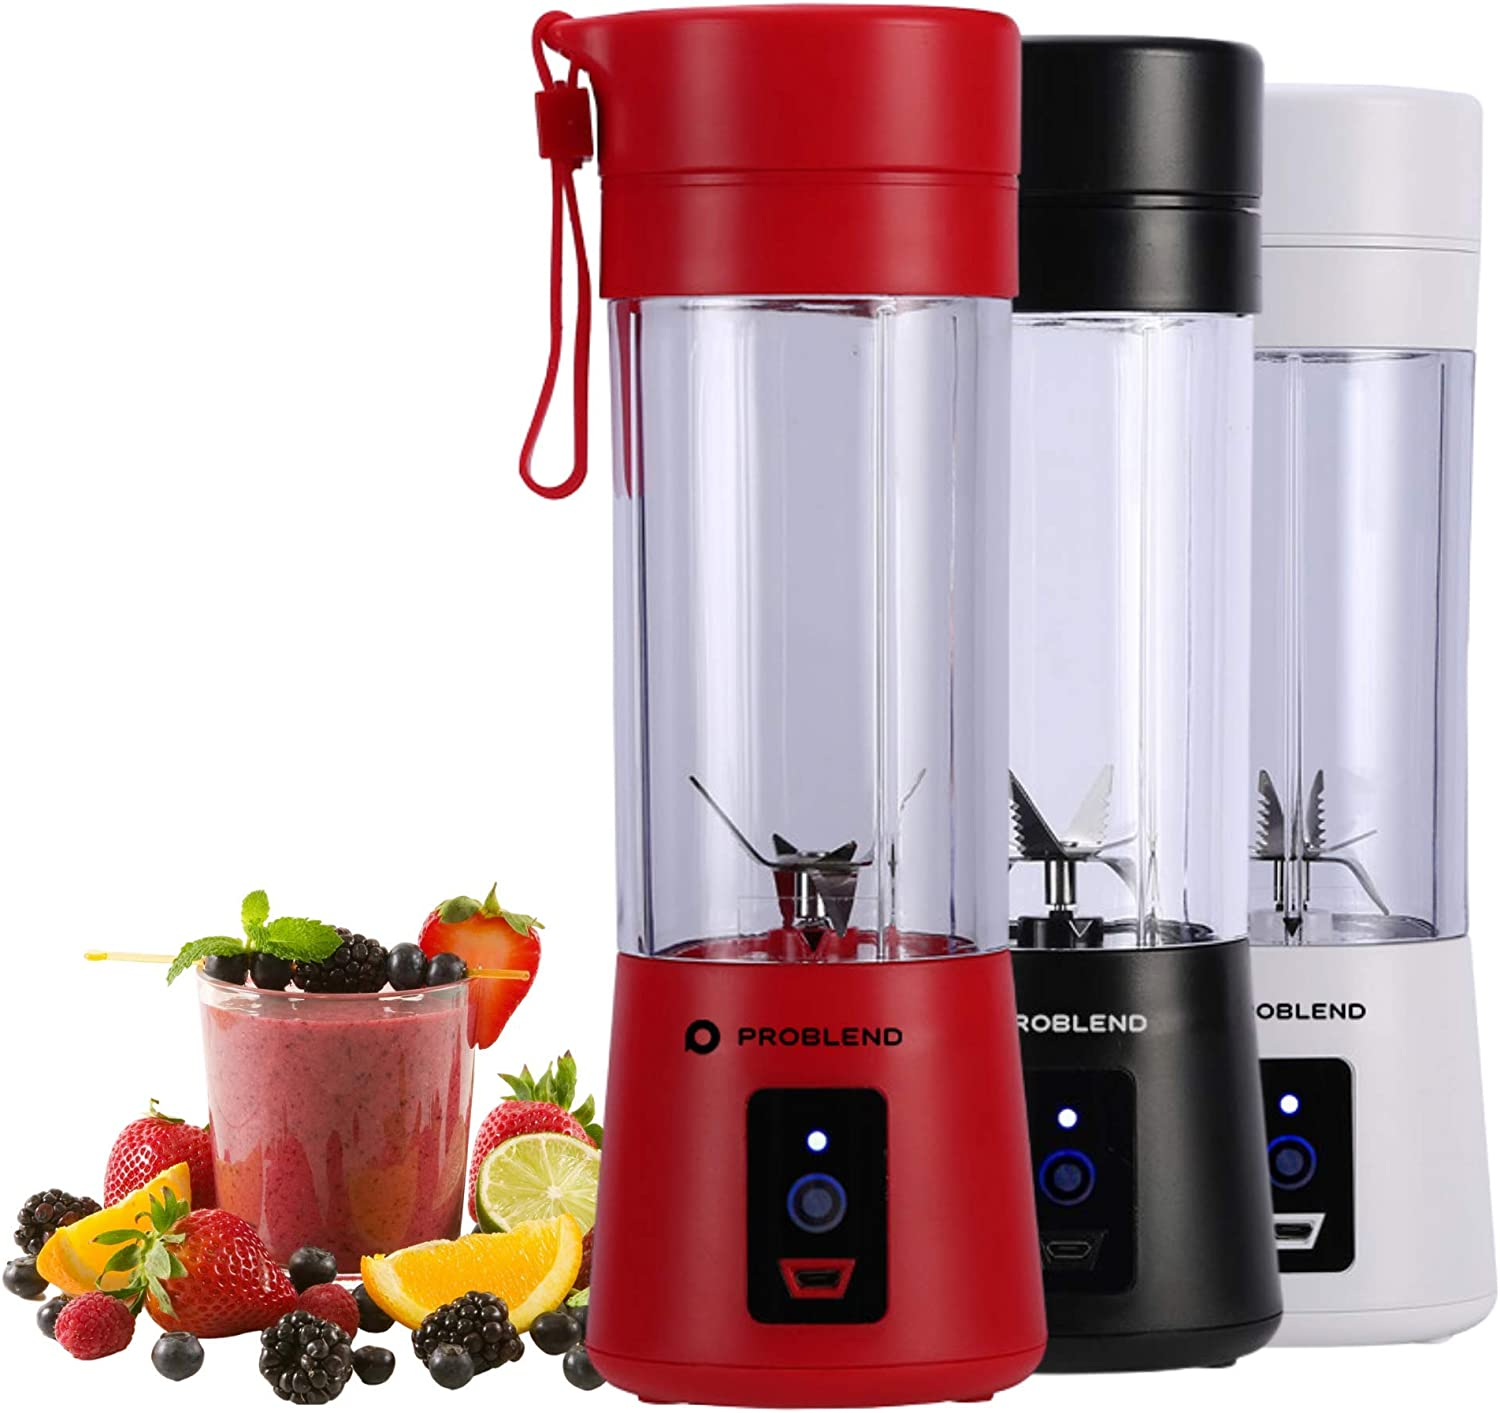 Problend Portable Blender, Personal Sized Blender For Smoothies and Shakes, Electric Mini Juicer Cup 13oz / 380ml USB Rechargeable, BPA Free, Six 3D Blades For Great Blending (Red)